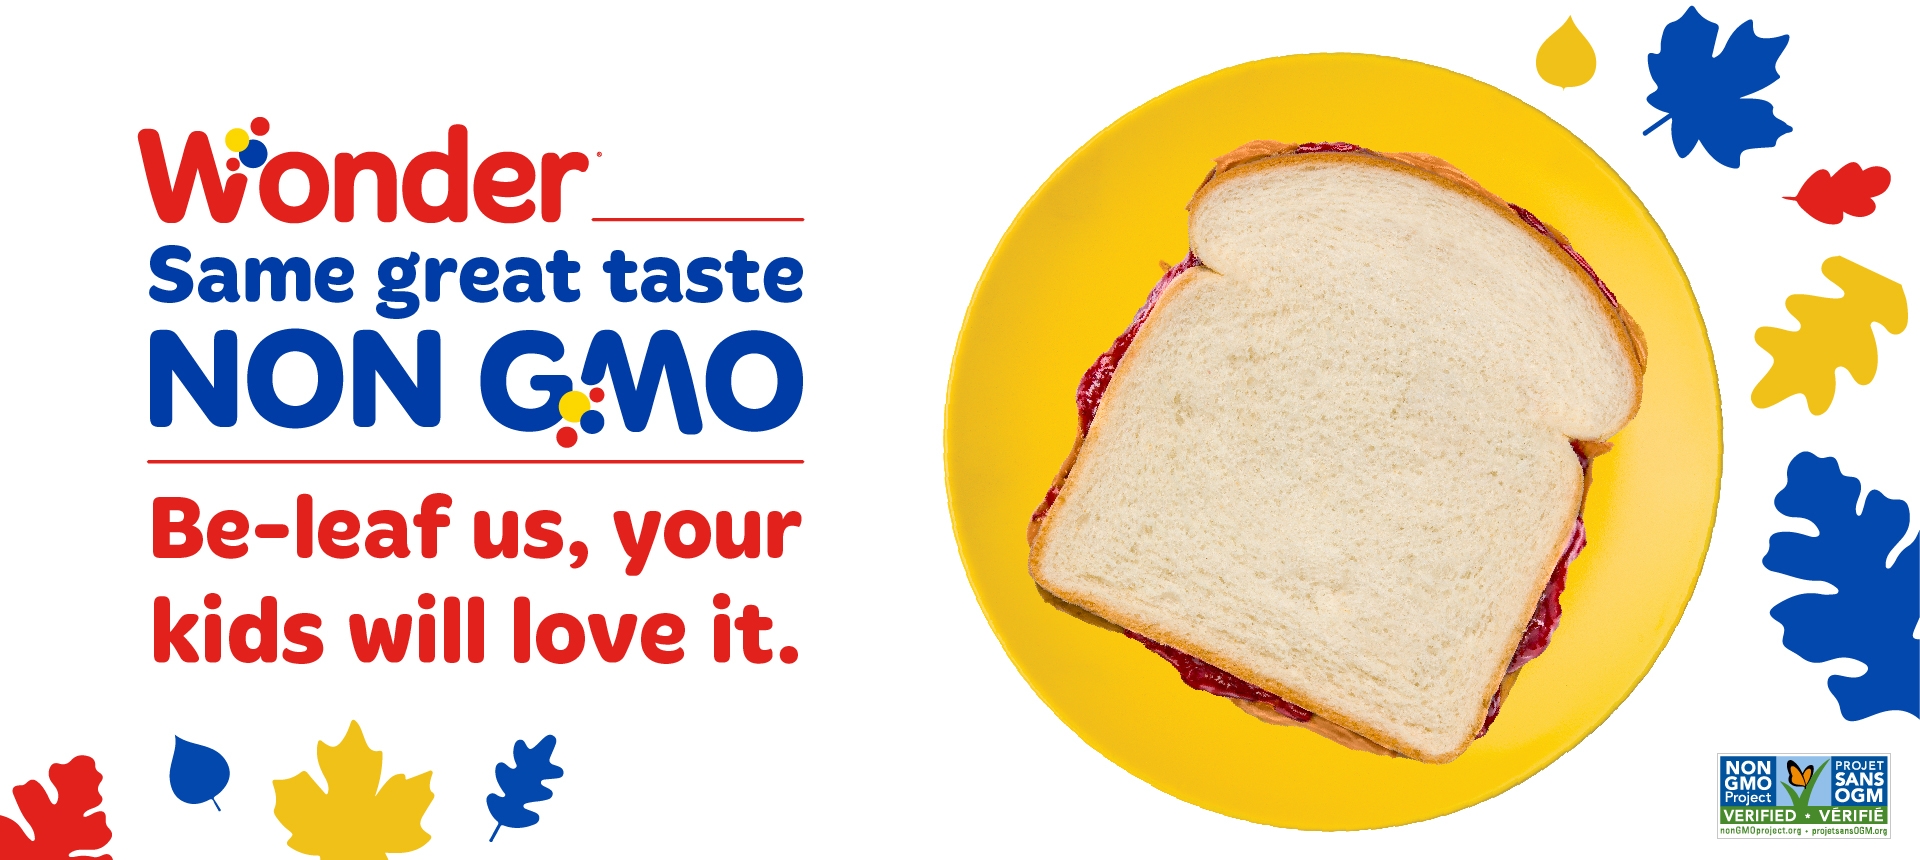 Wonder NonGMO logo with peanut butter and jelly sandwich on yellow plate with blue and red leaves